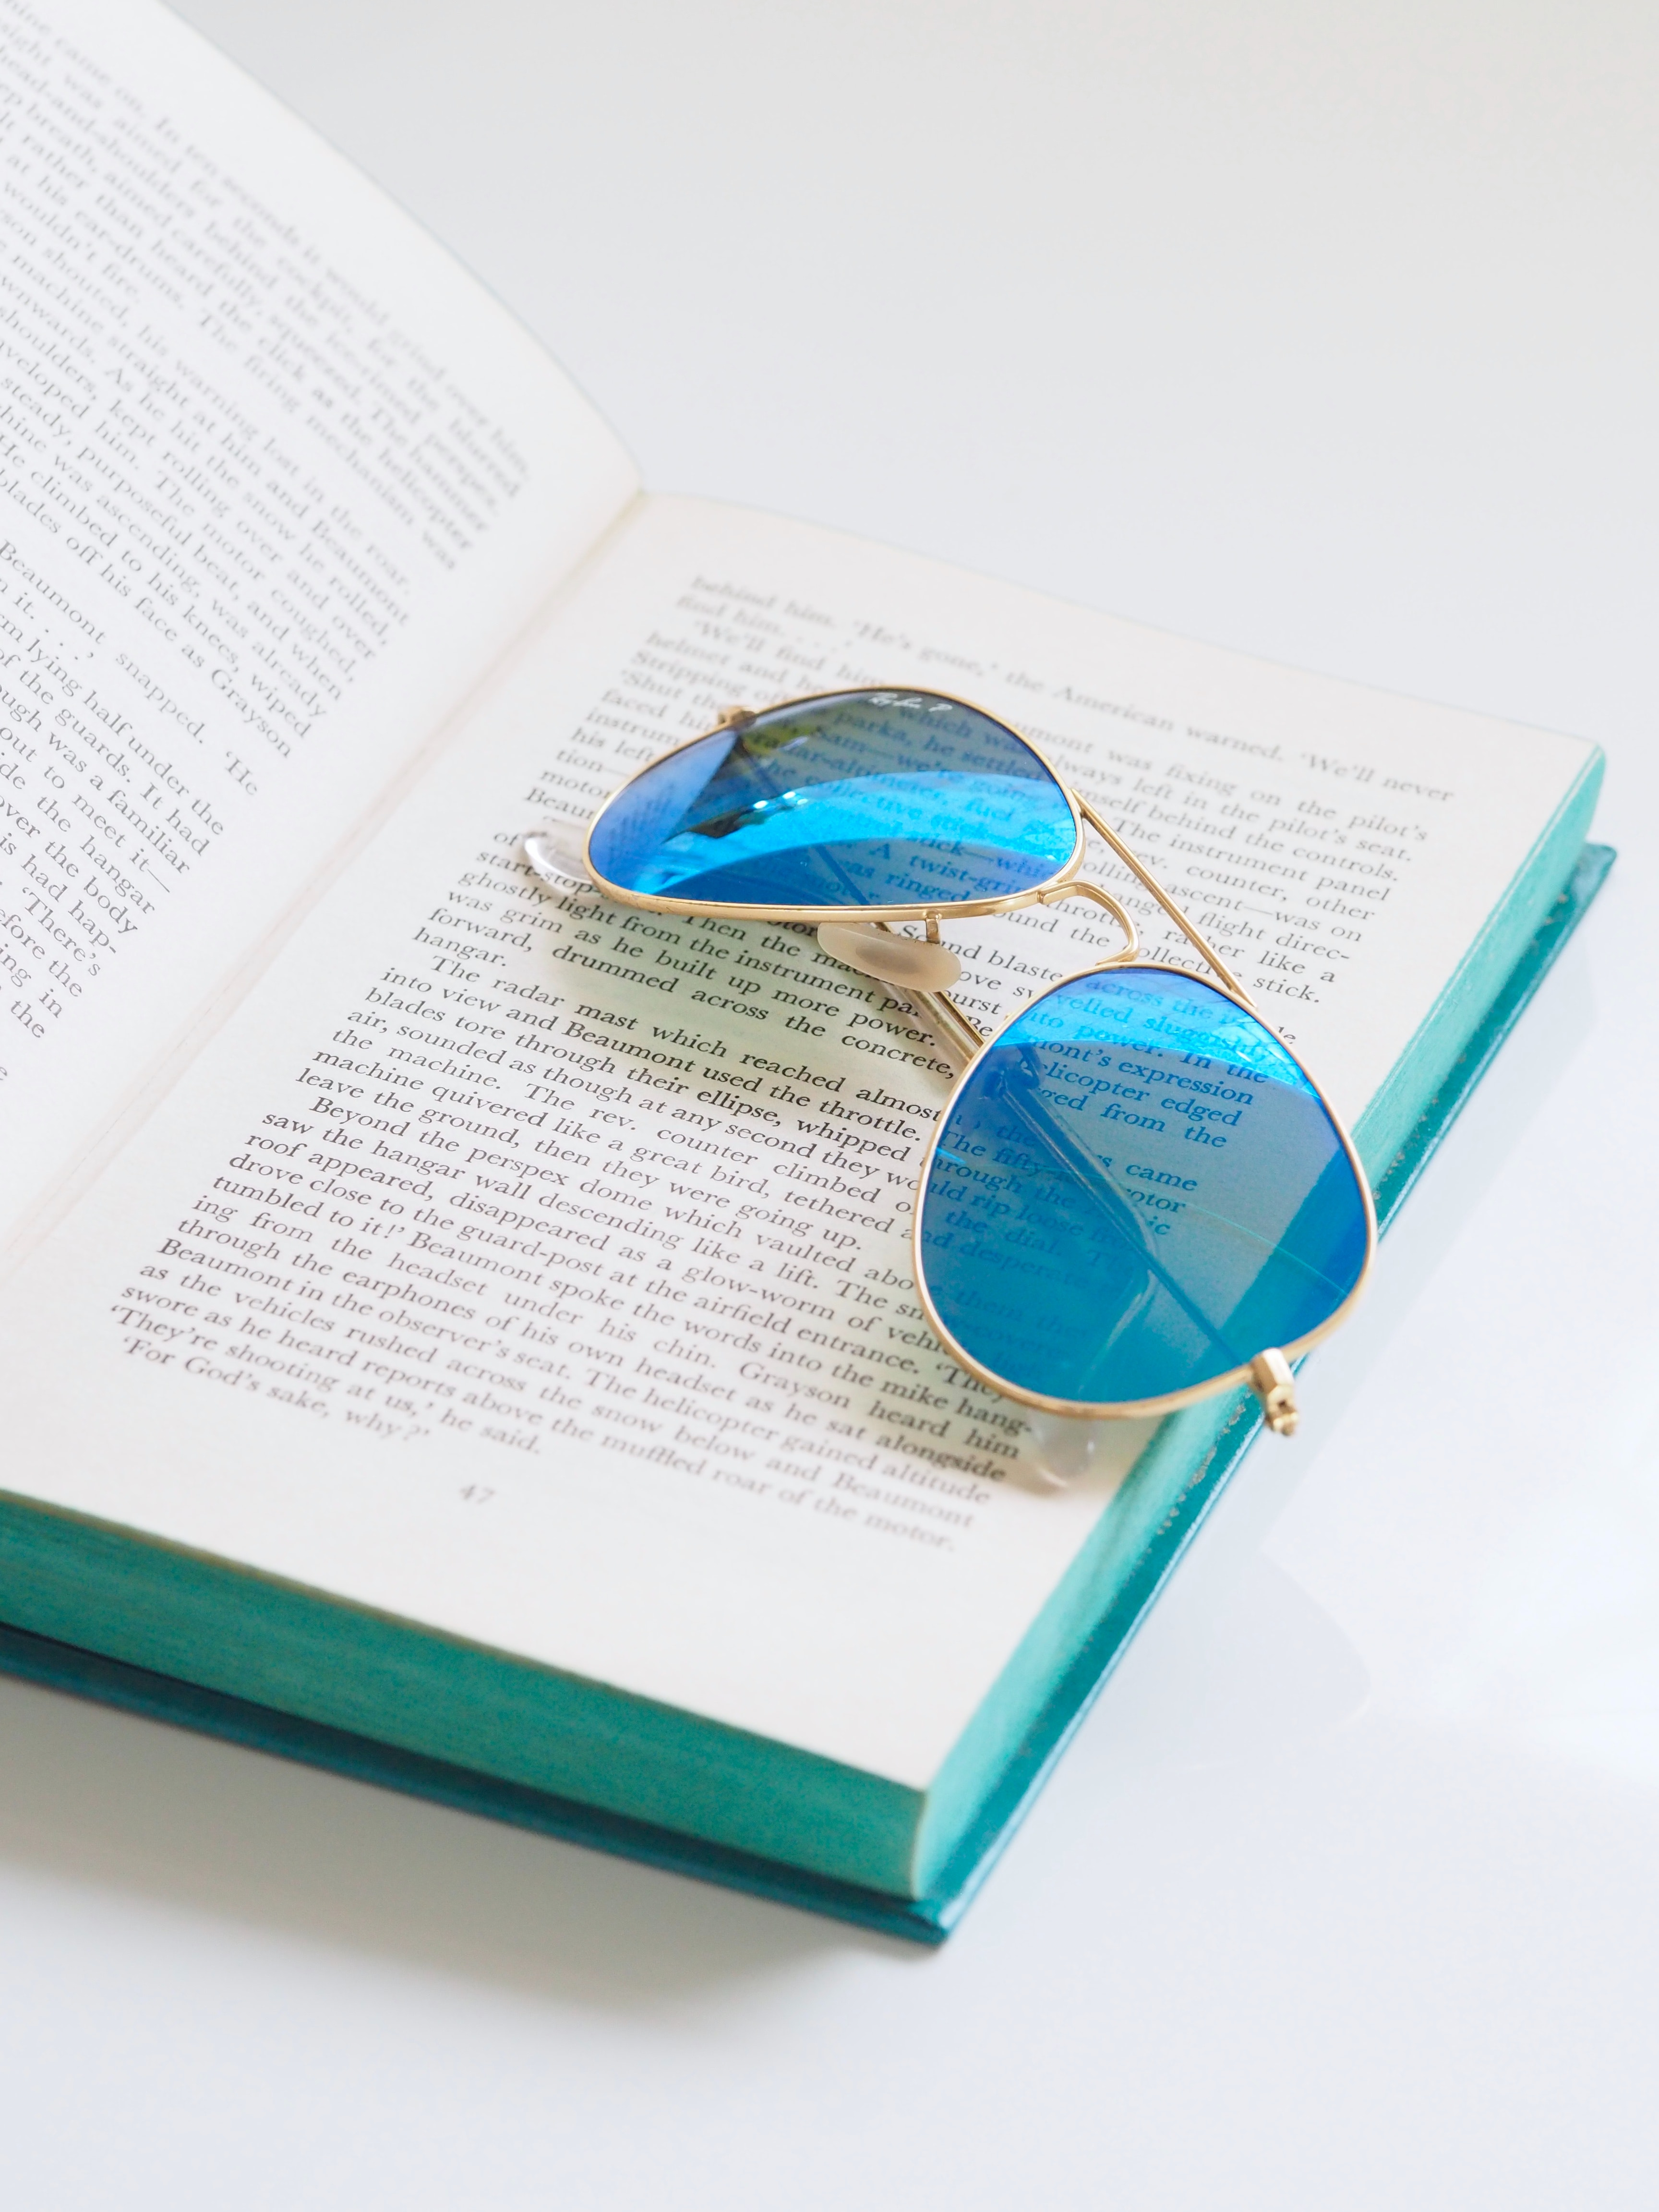 Content reading and feedback. Blue sunglasses on open book. Stock photo: https://stocksnap.io